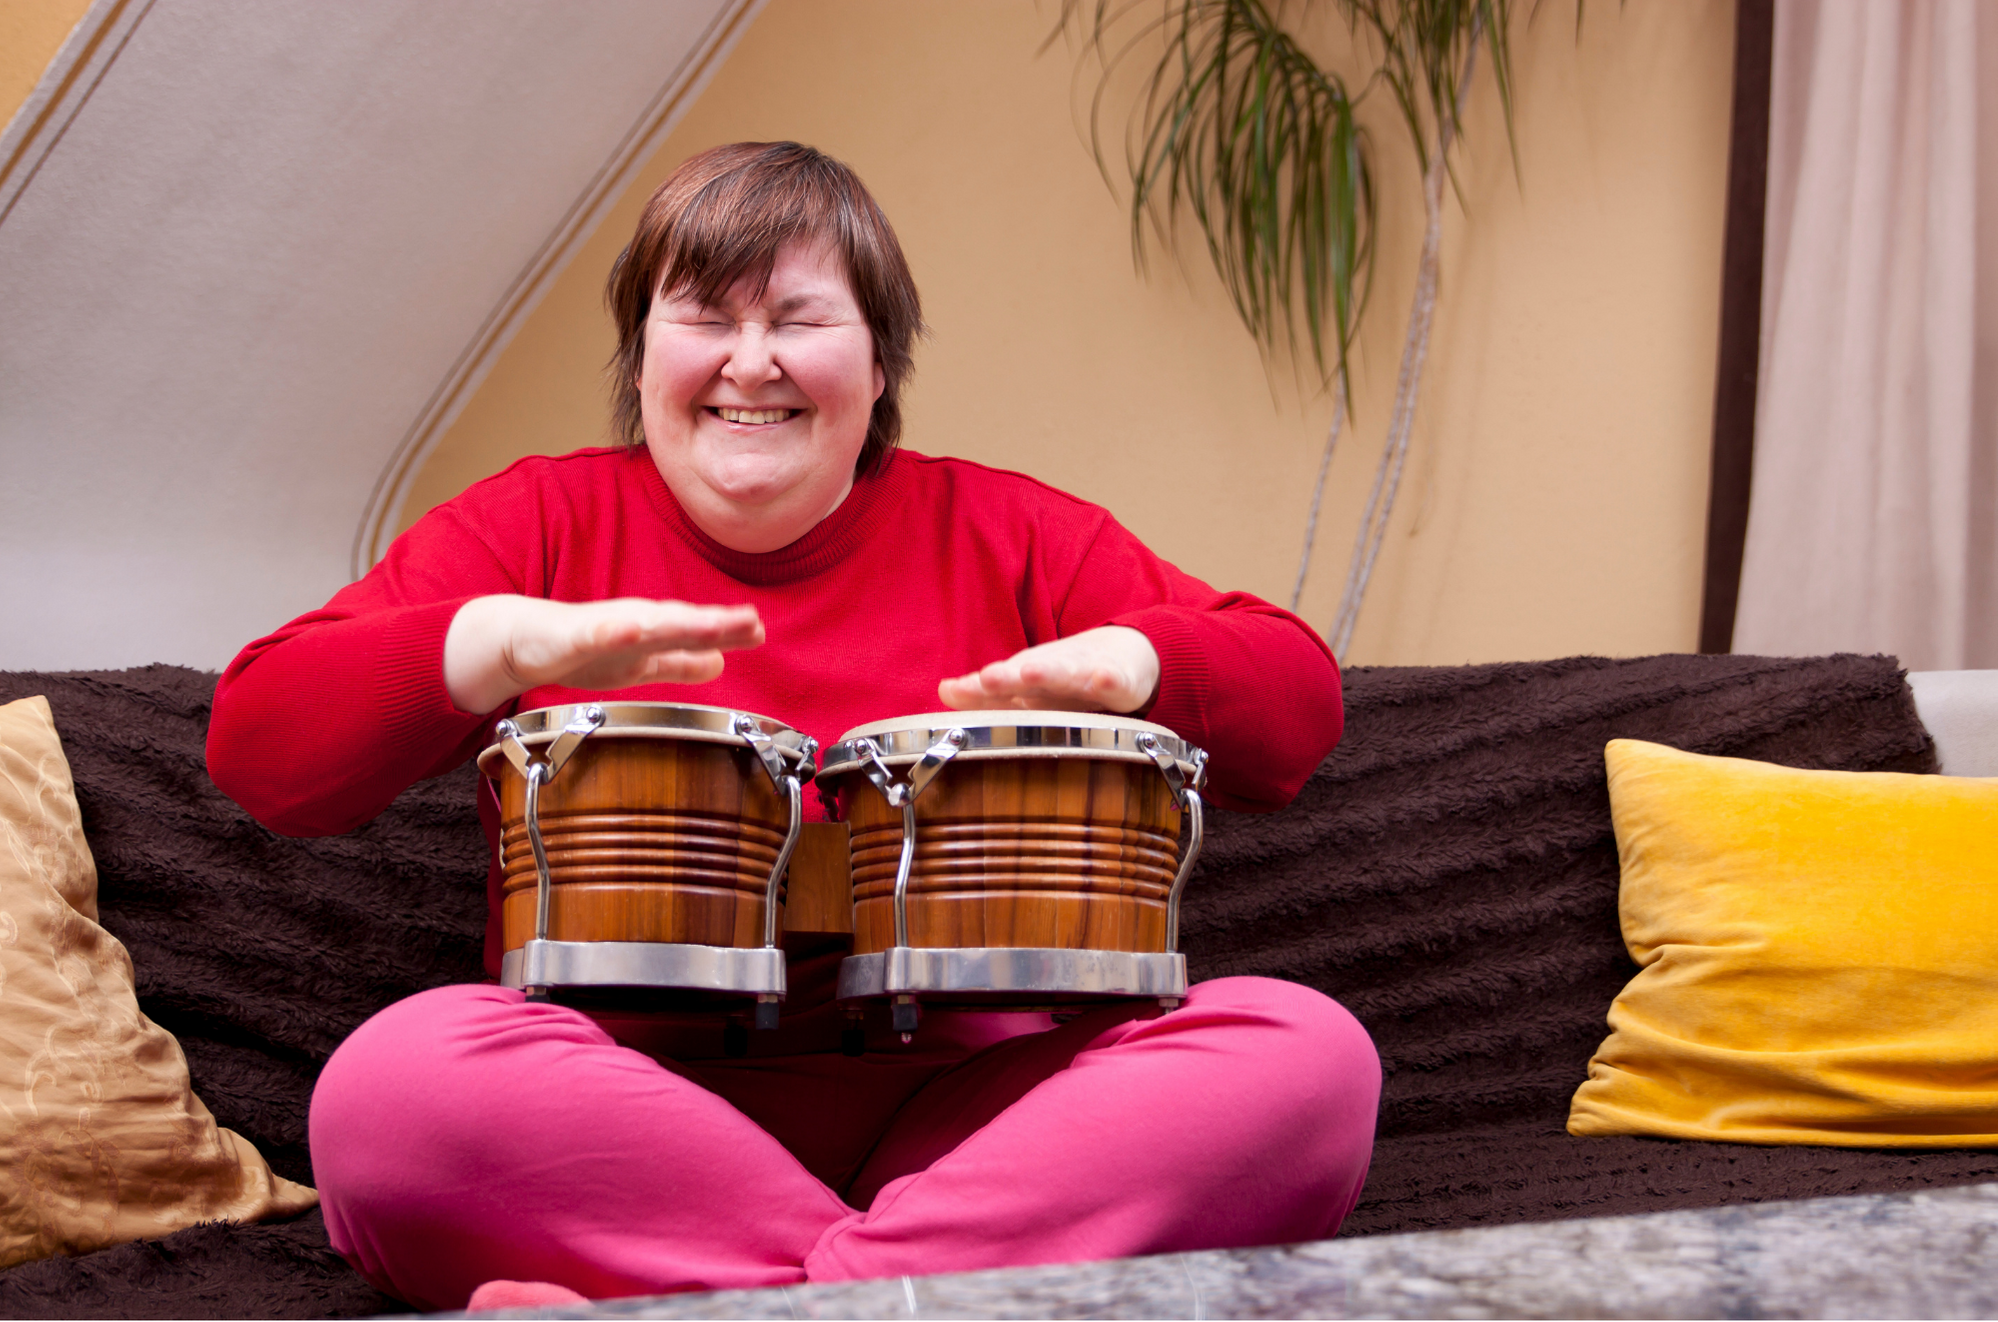 woman with disability wearing red shirt and hot pink pants sitting cross-legged on a modern sofa playing bongos balanced on her knees